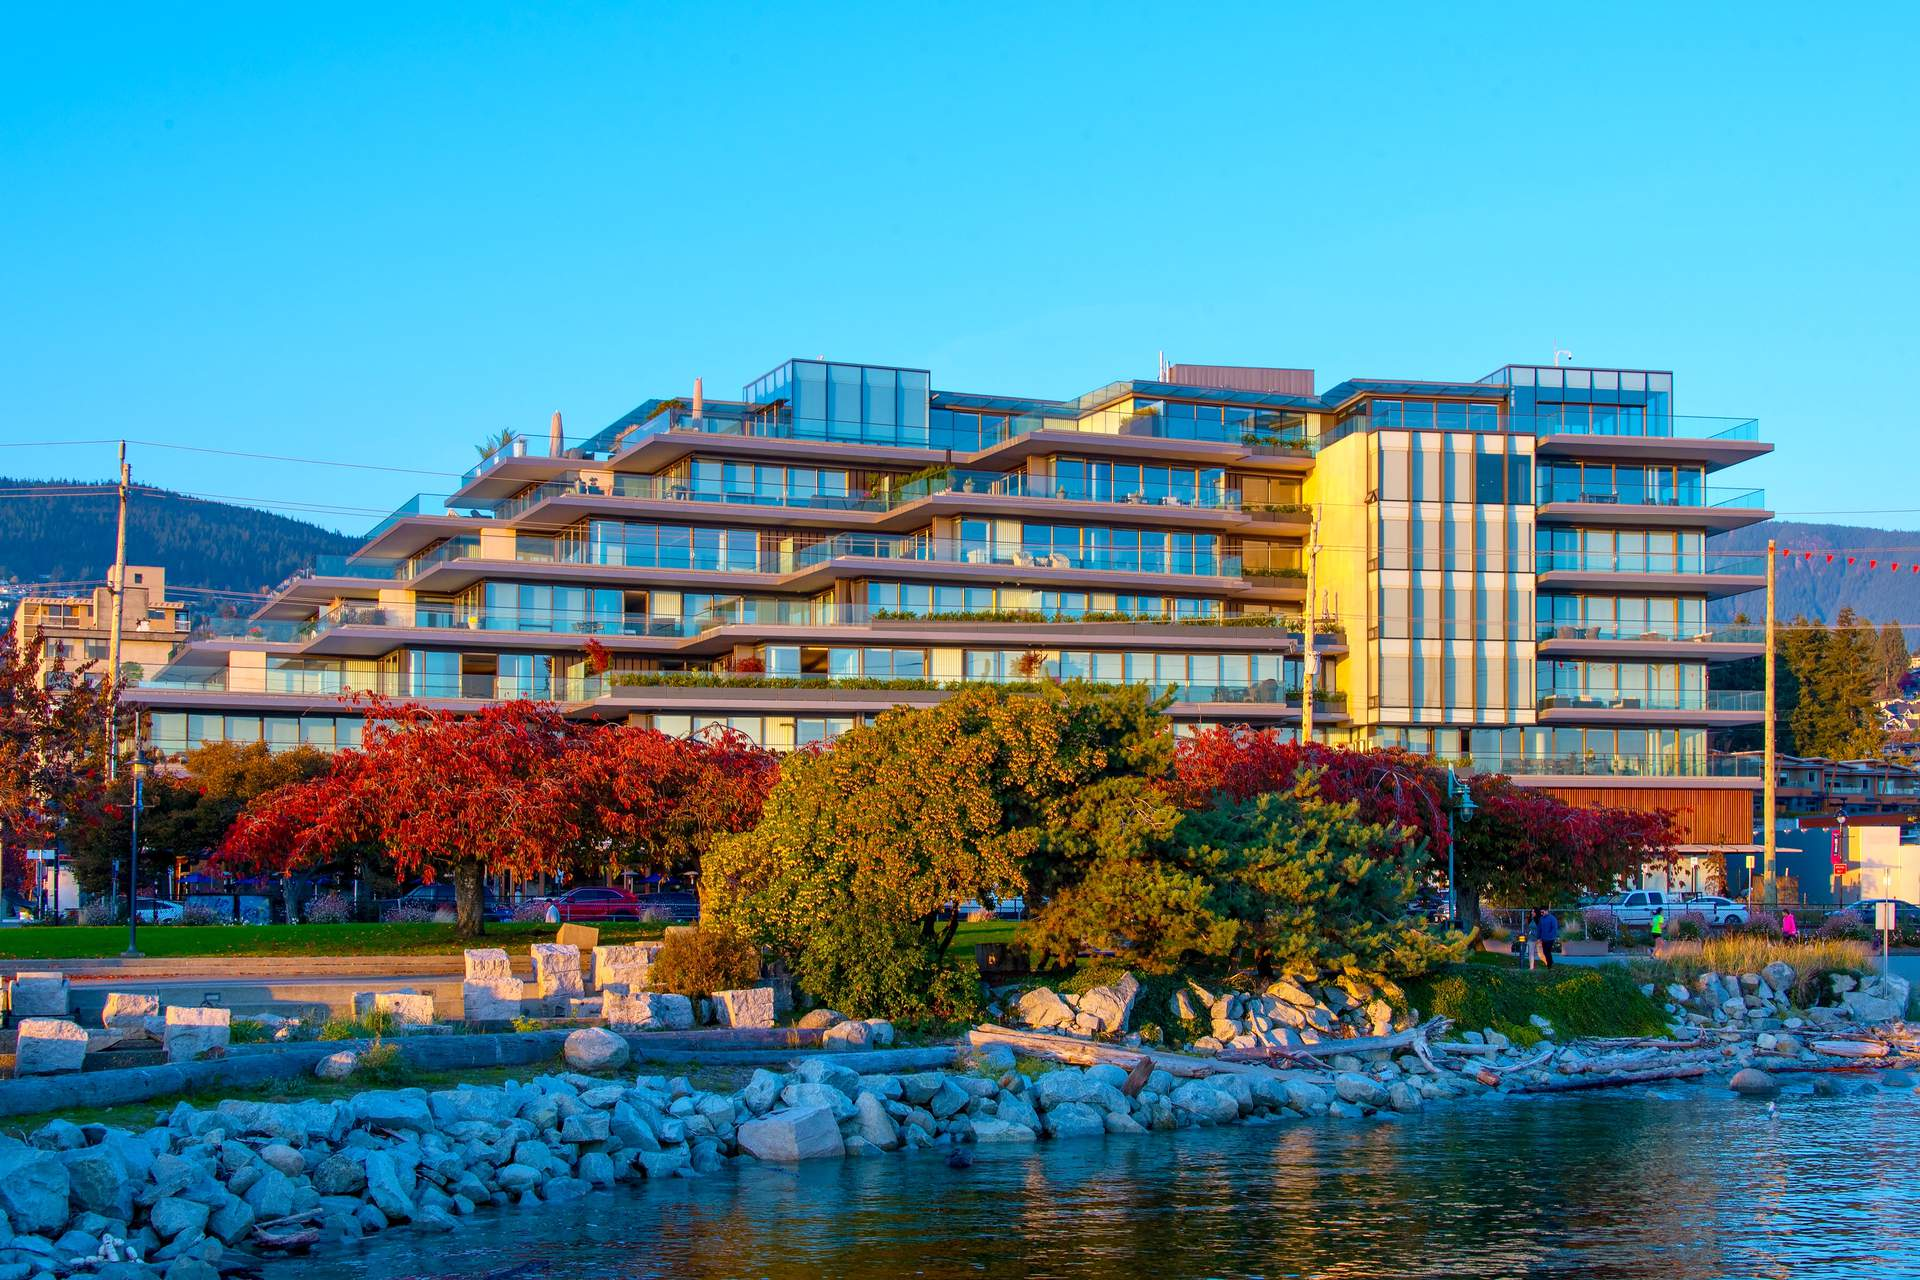 GROSVENOR AMBLESIDE - Waterfront Suite - over 2,700 sq.ft. - Spectacular Ocean Views